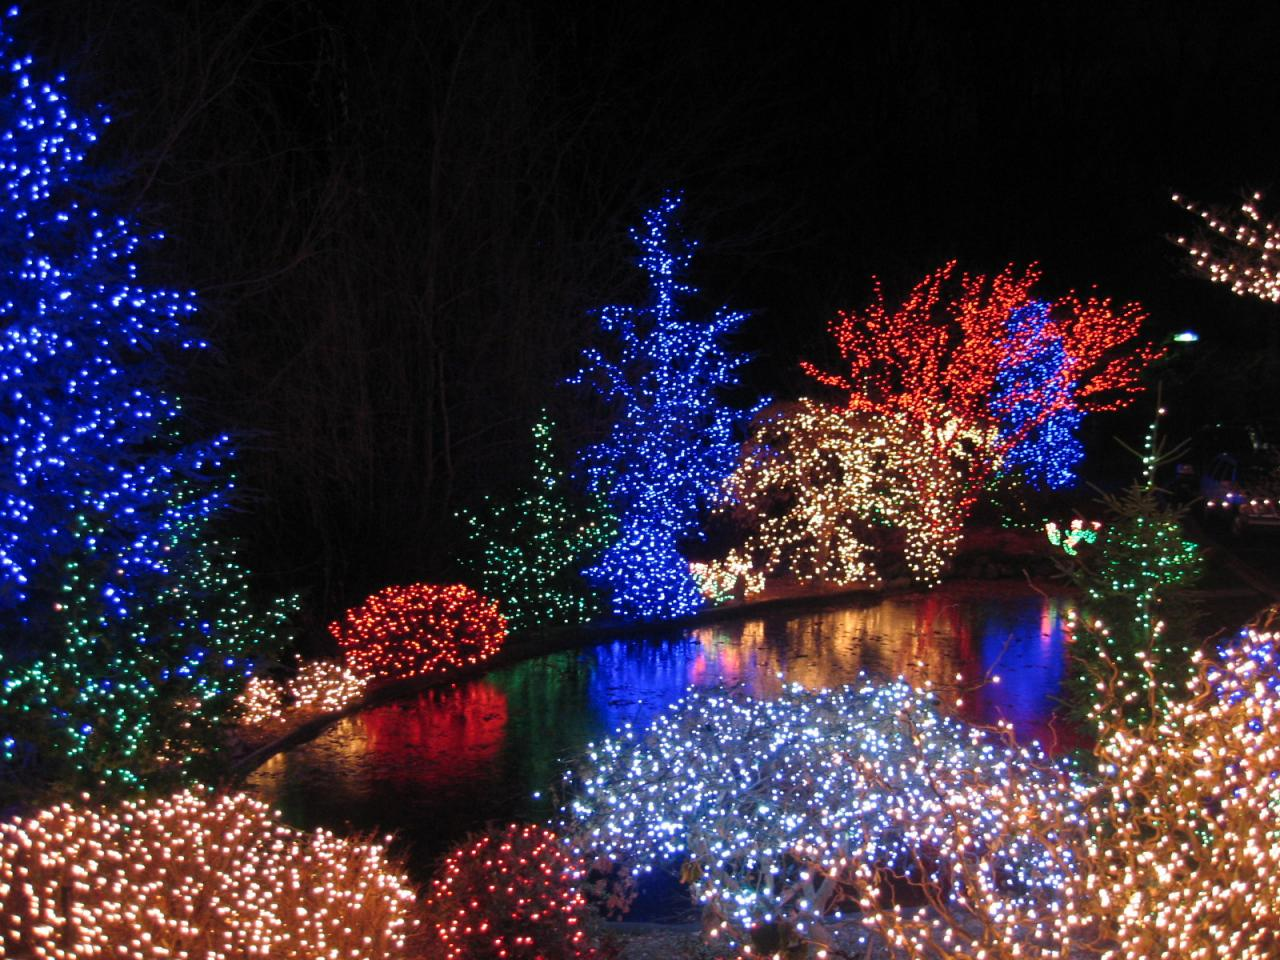 using landscape net lighting - Netted Christmas Lights